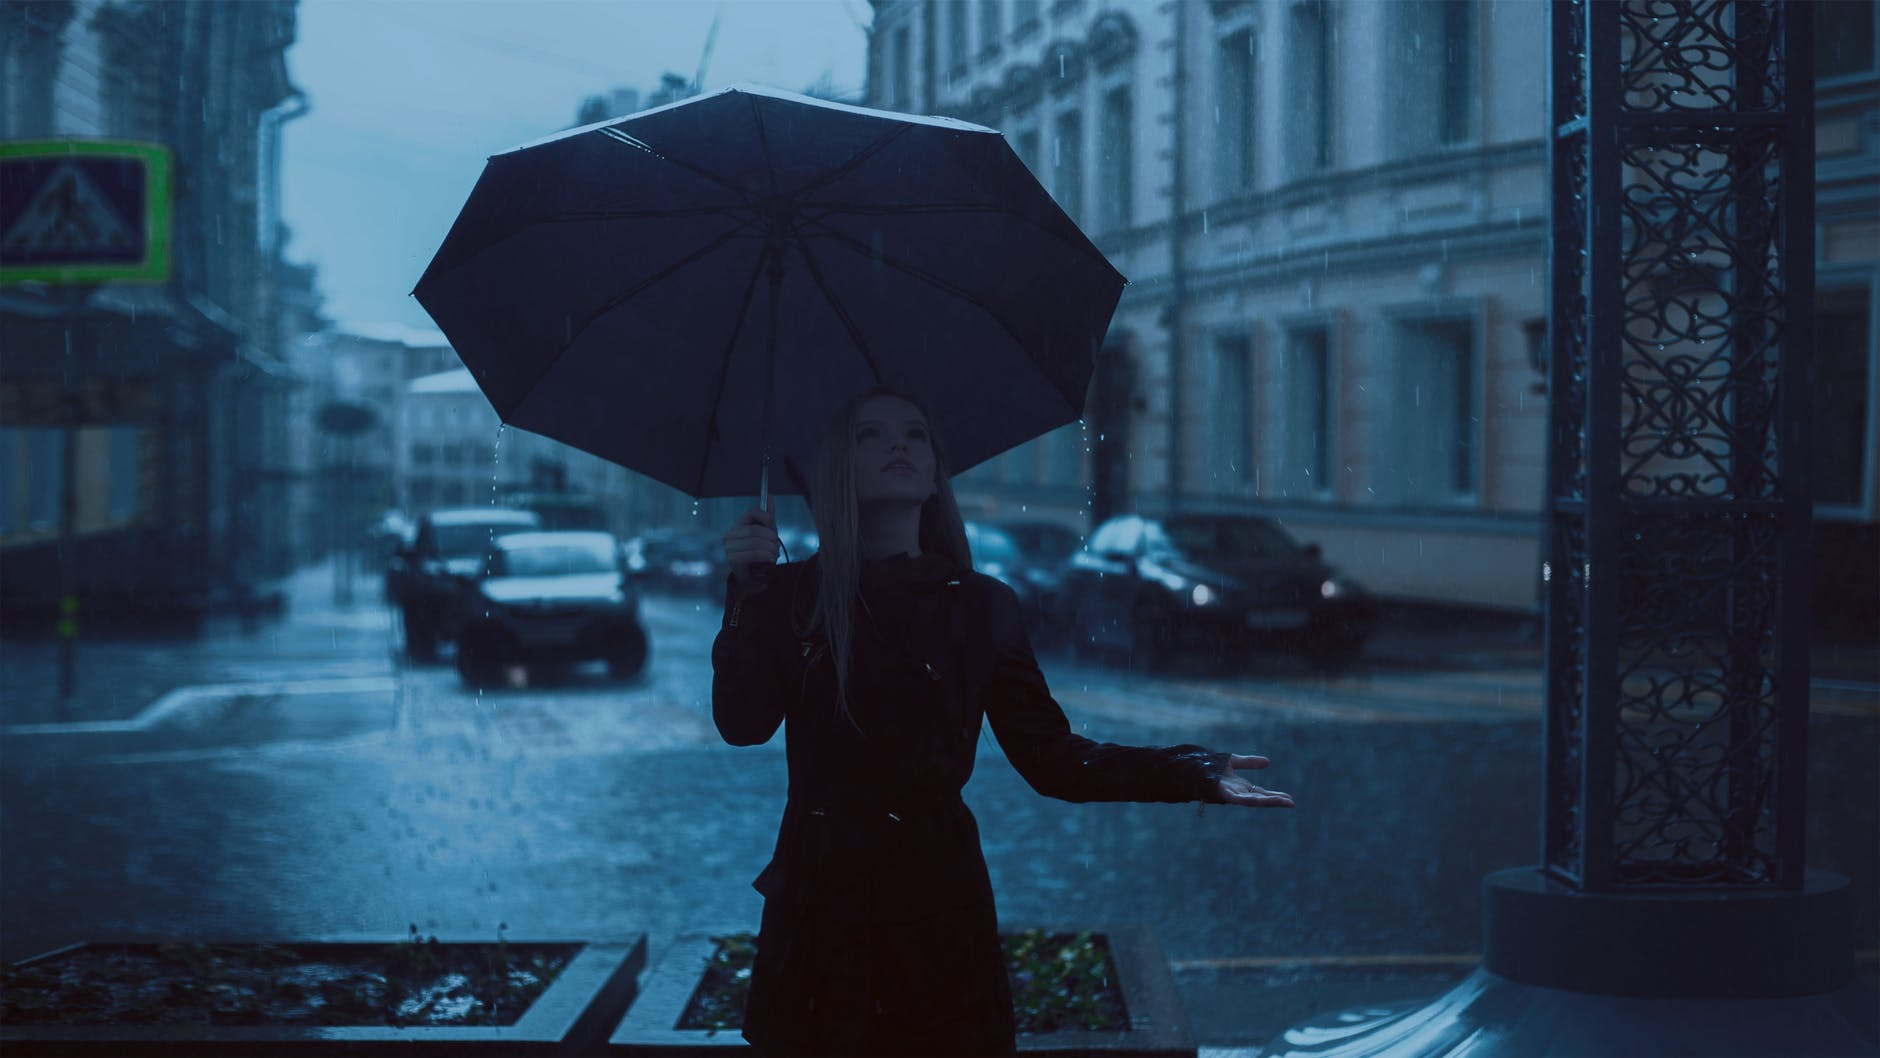 A lady is standing holding an umbrella on her right hand and opening her left hand to feel the rain